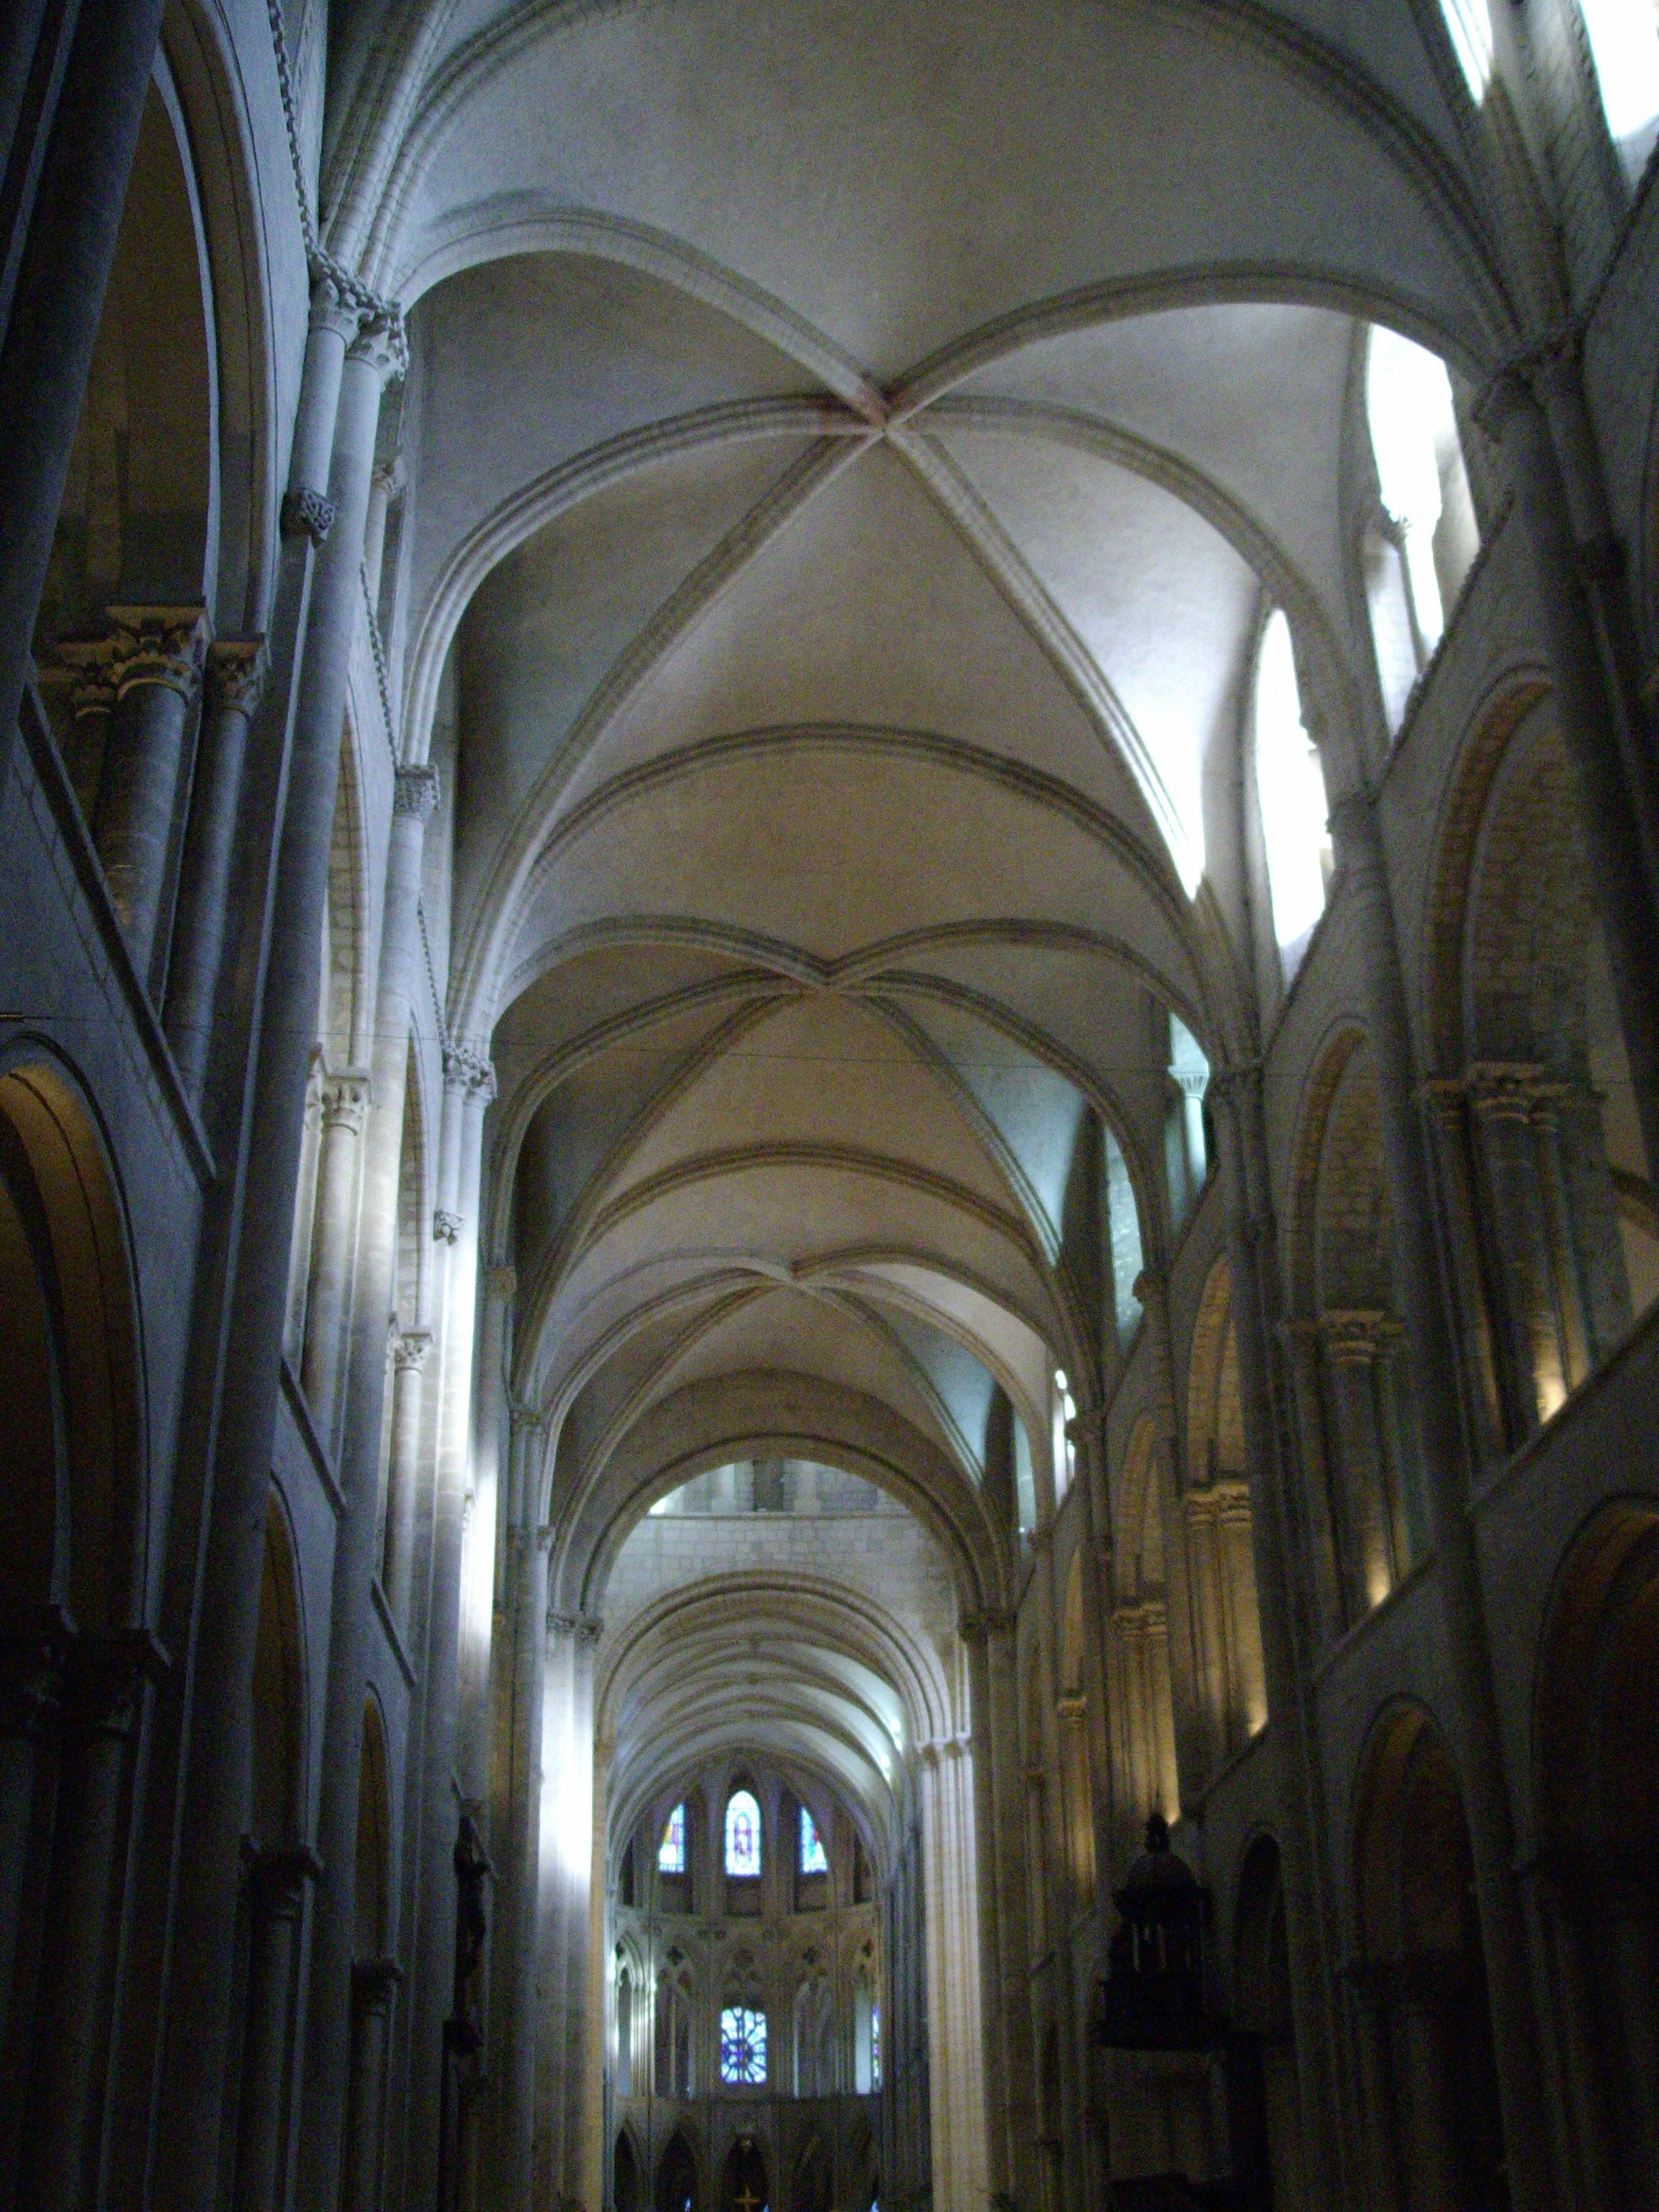 The ribbed vaults at the SaintEtienne Caen are